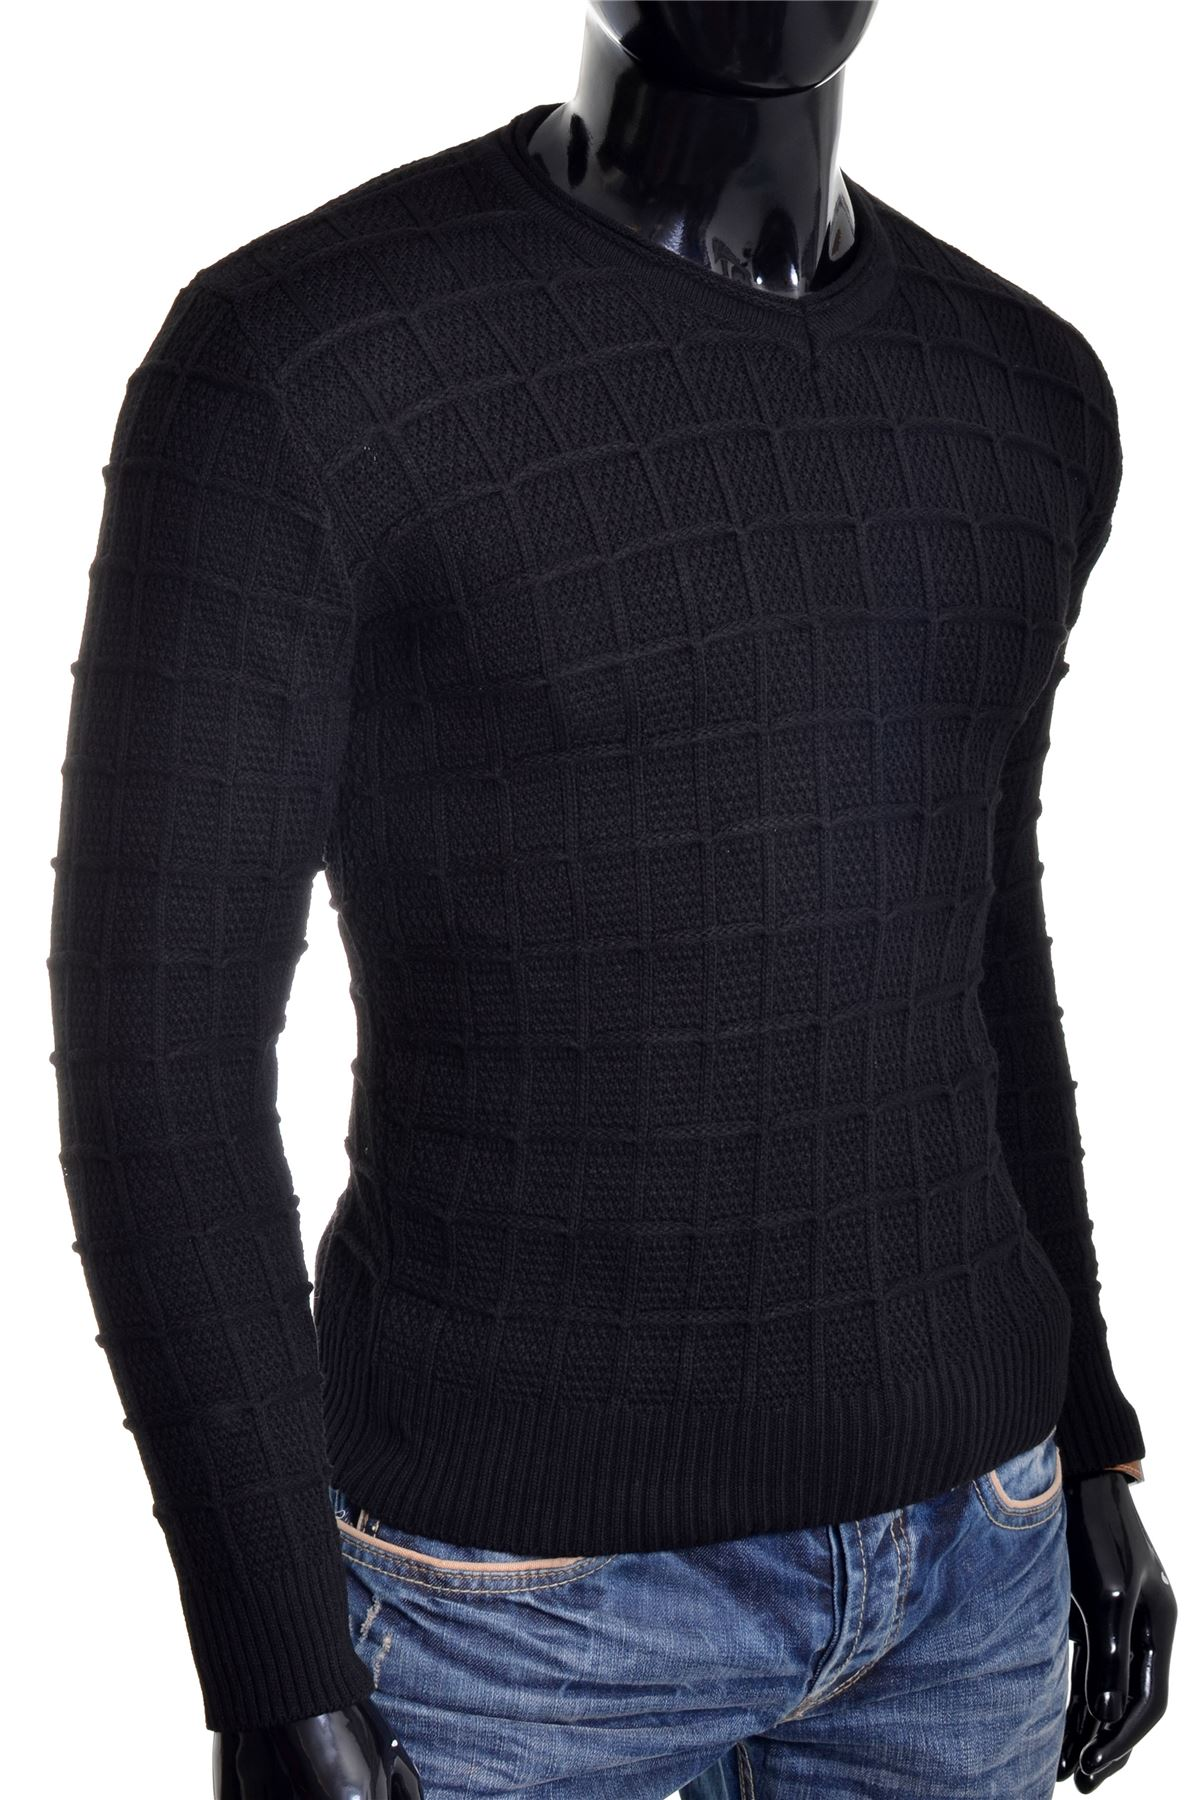 D-amp-R-Men-039-s-Wool-Jumper-Knit-Smart-Long-Sleeve-Sweater-Crew-Neck-Check-Top-Slim thumbnail 9